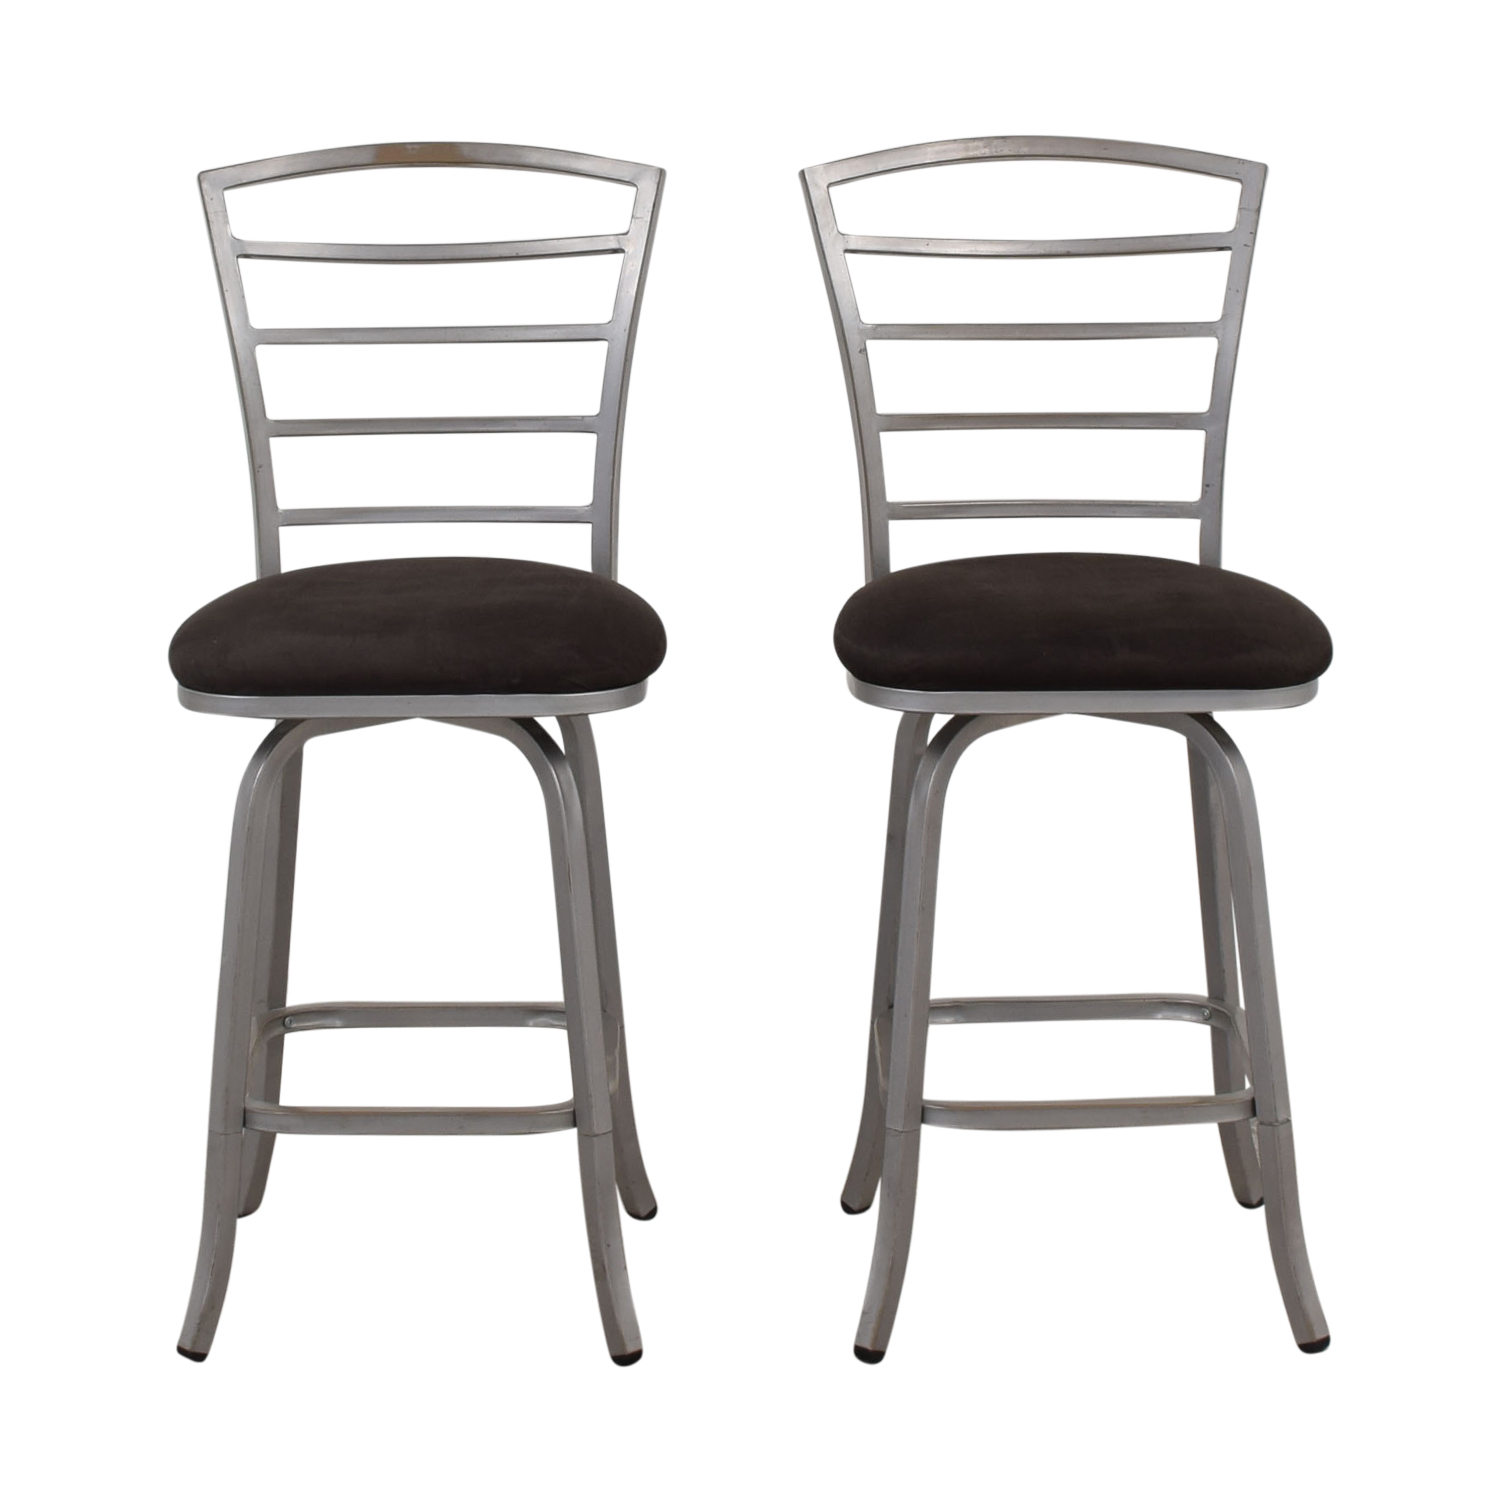 Crate & Barrel Crate & Barrel Bar Chairs Chairs